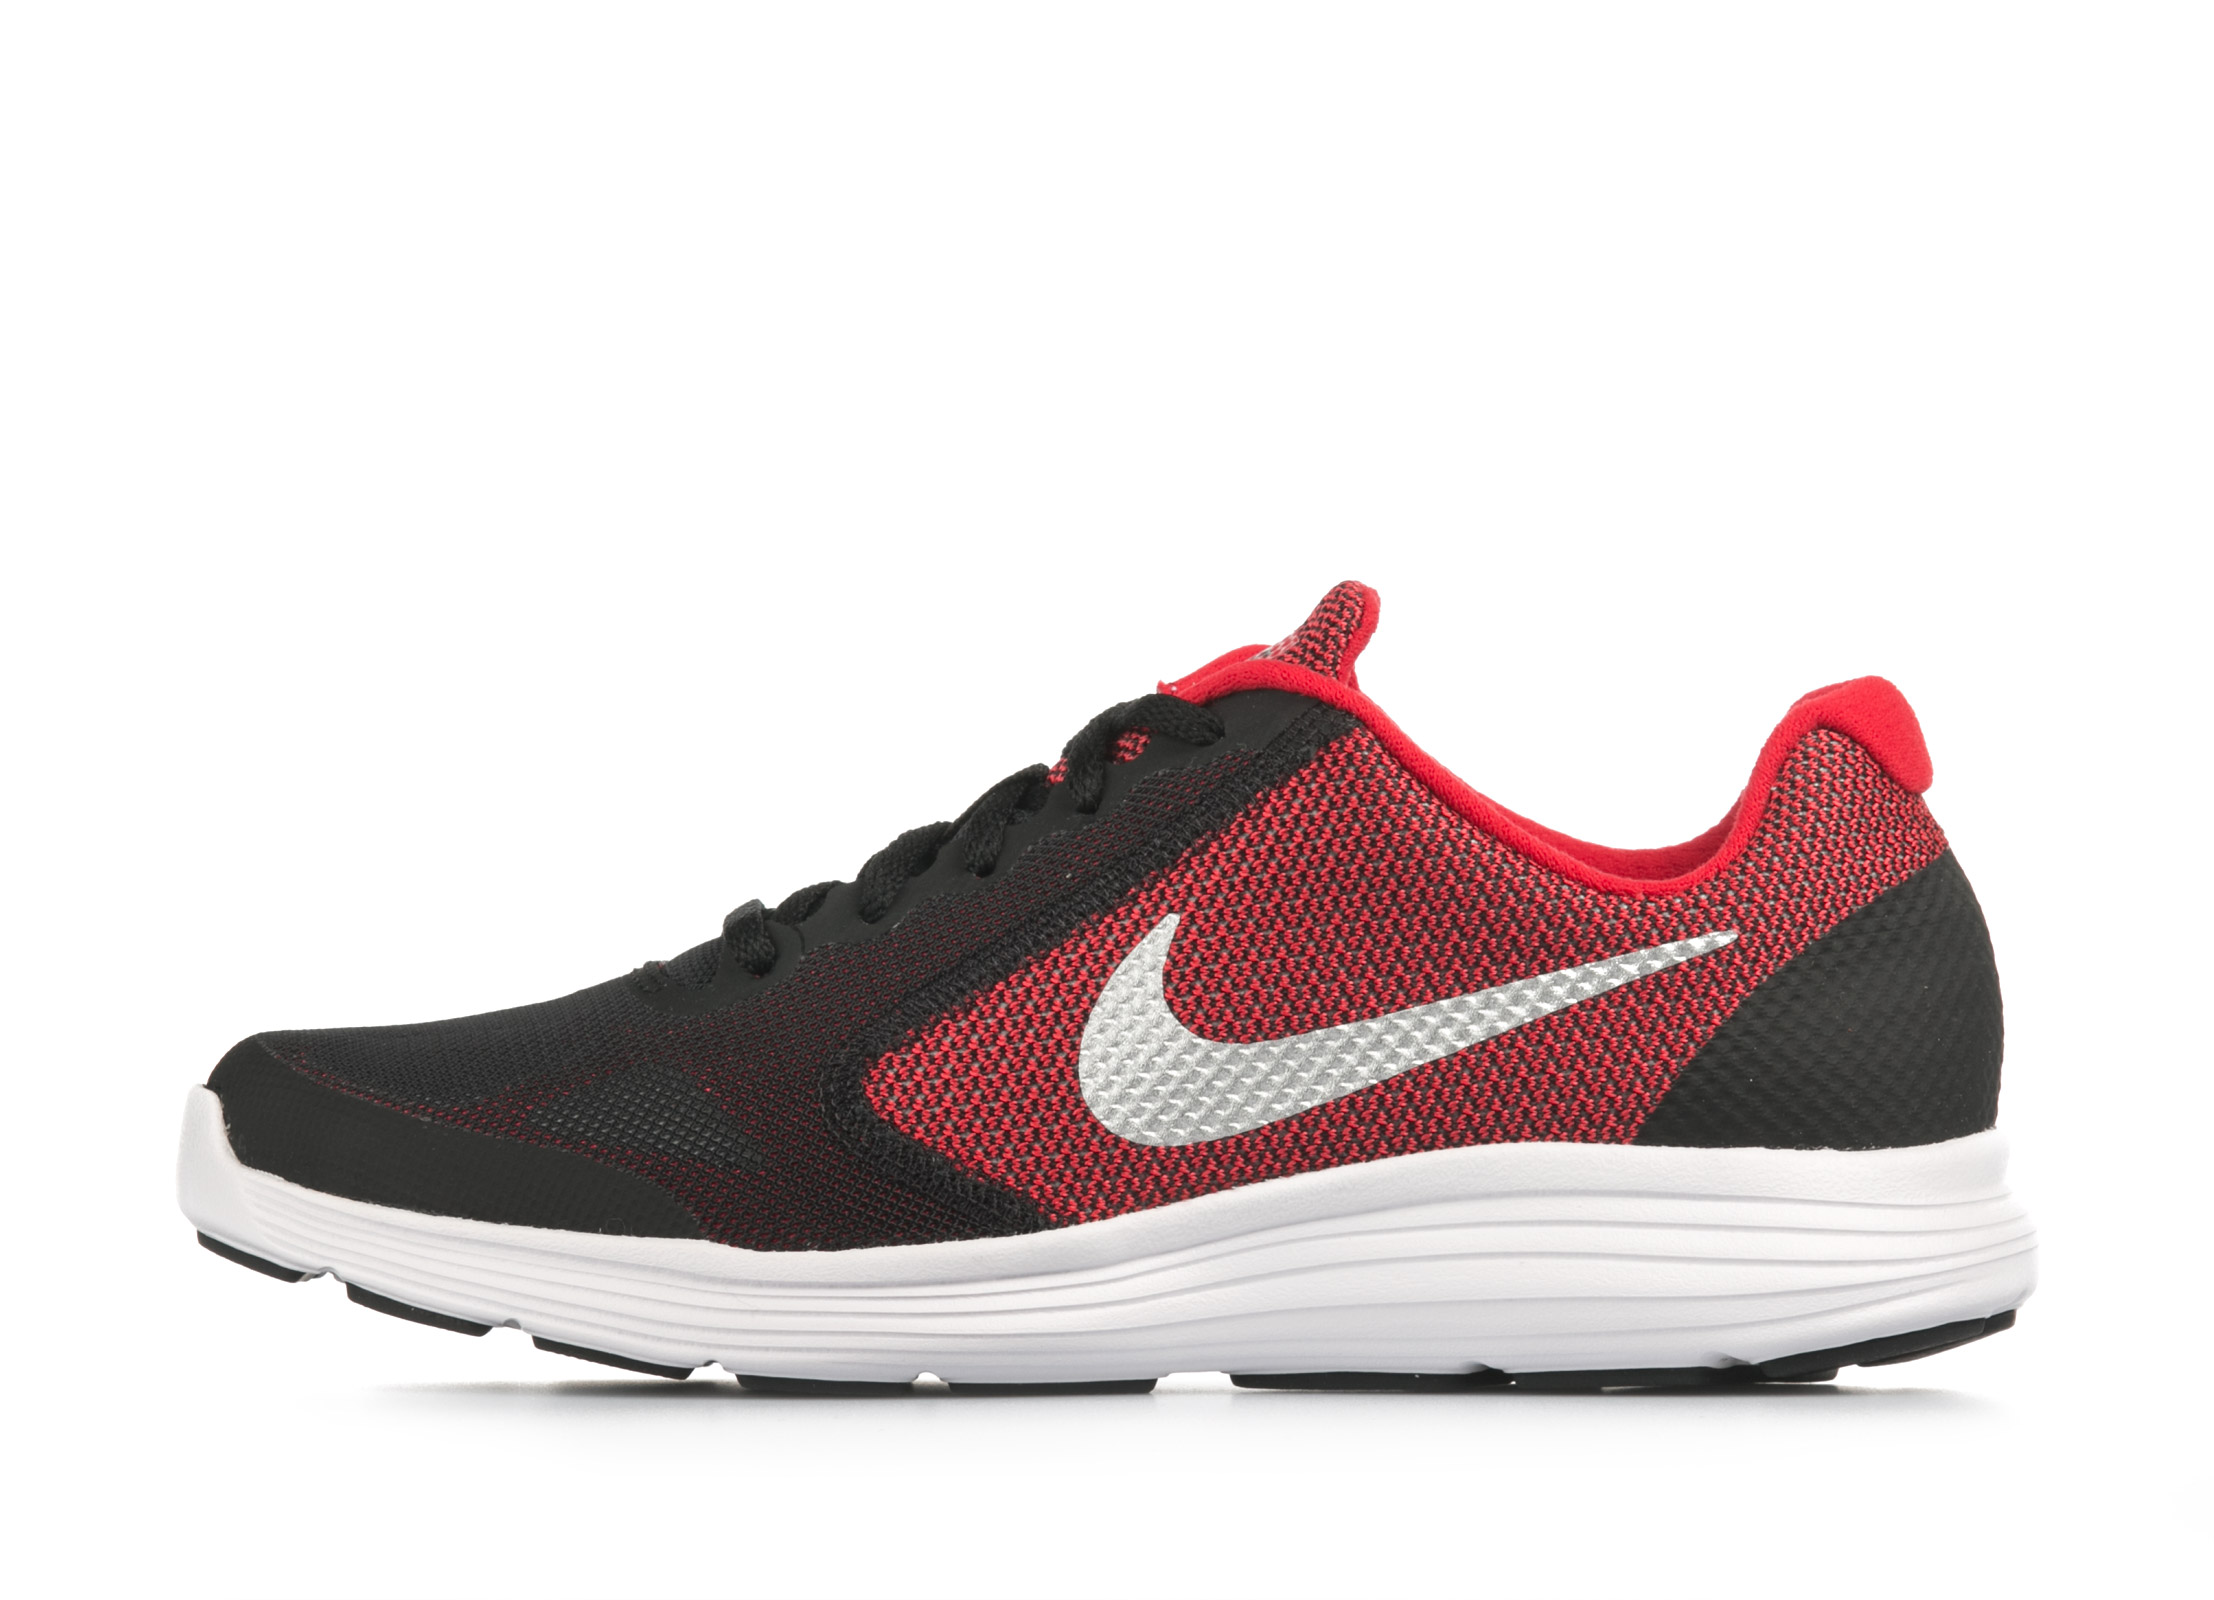 10449a507f52 ... official nike kaishi red skroutz e1293 3ae42 official nike kaishi red  skroutz e1293 3ae42  greece nike kaishi 2.0 br blue sneakers price in india  ...